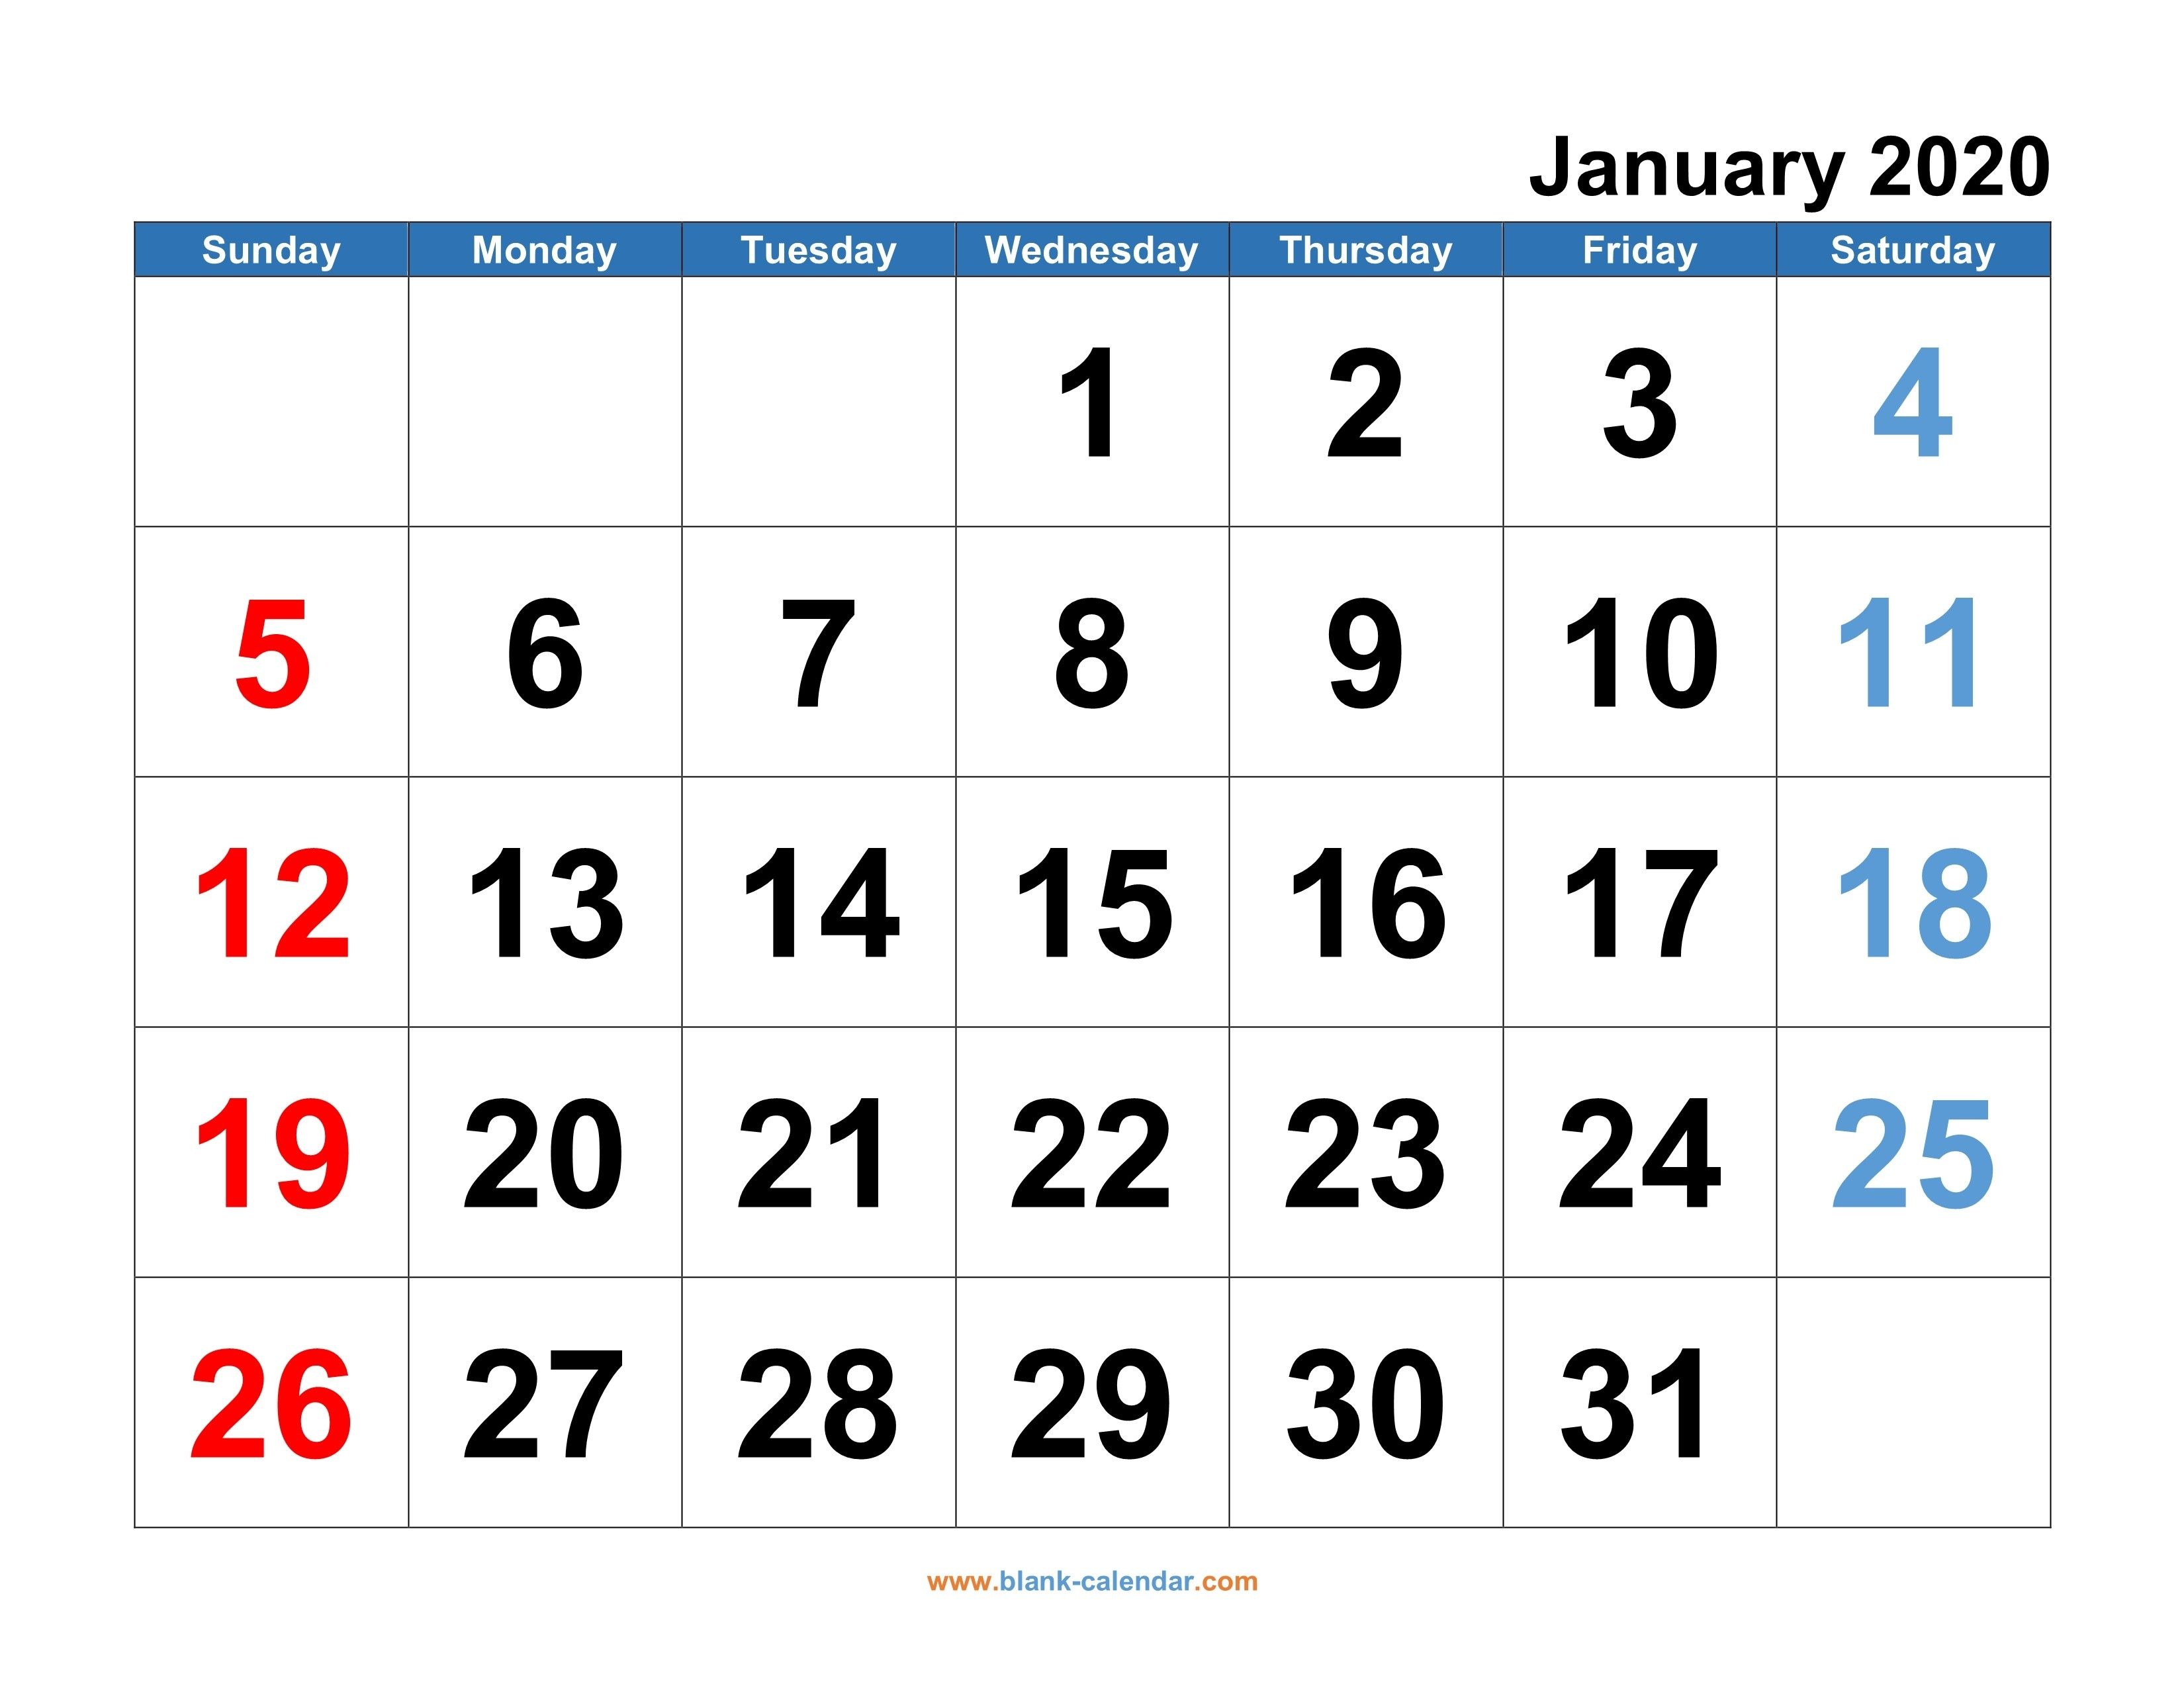 Monthly Calendar 2020 | Free Download, Editable And Printable-3 Month Editable Calendar 2020 Template